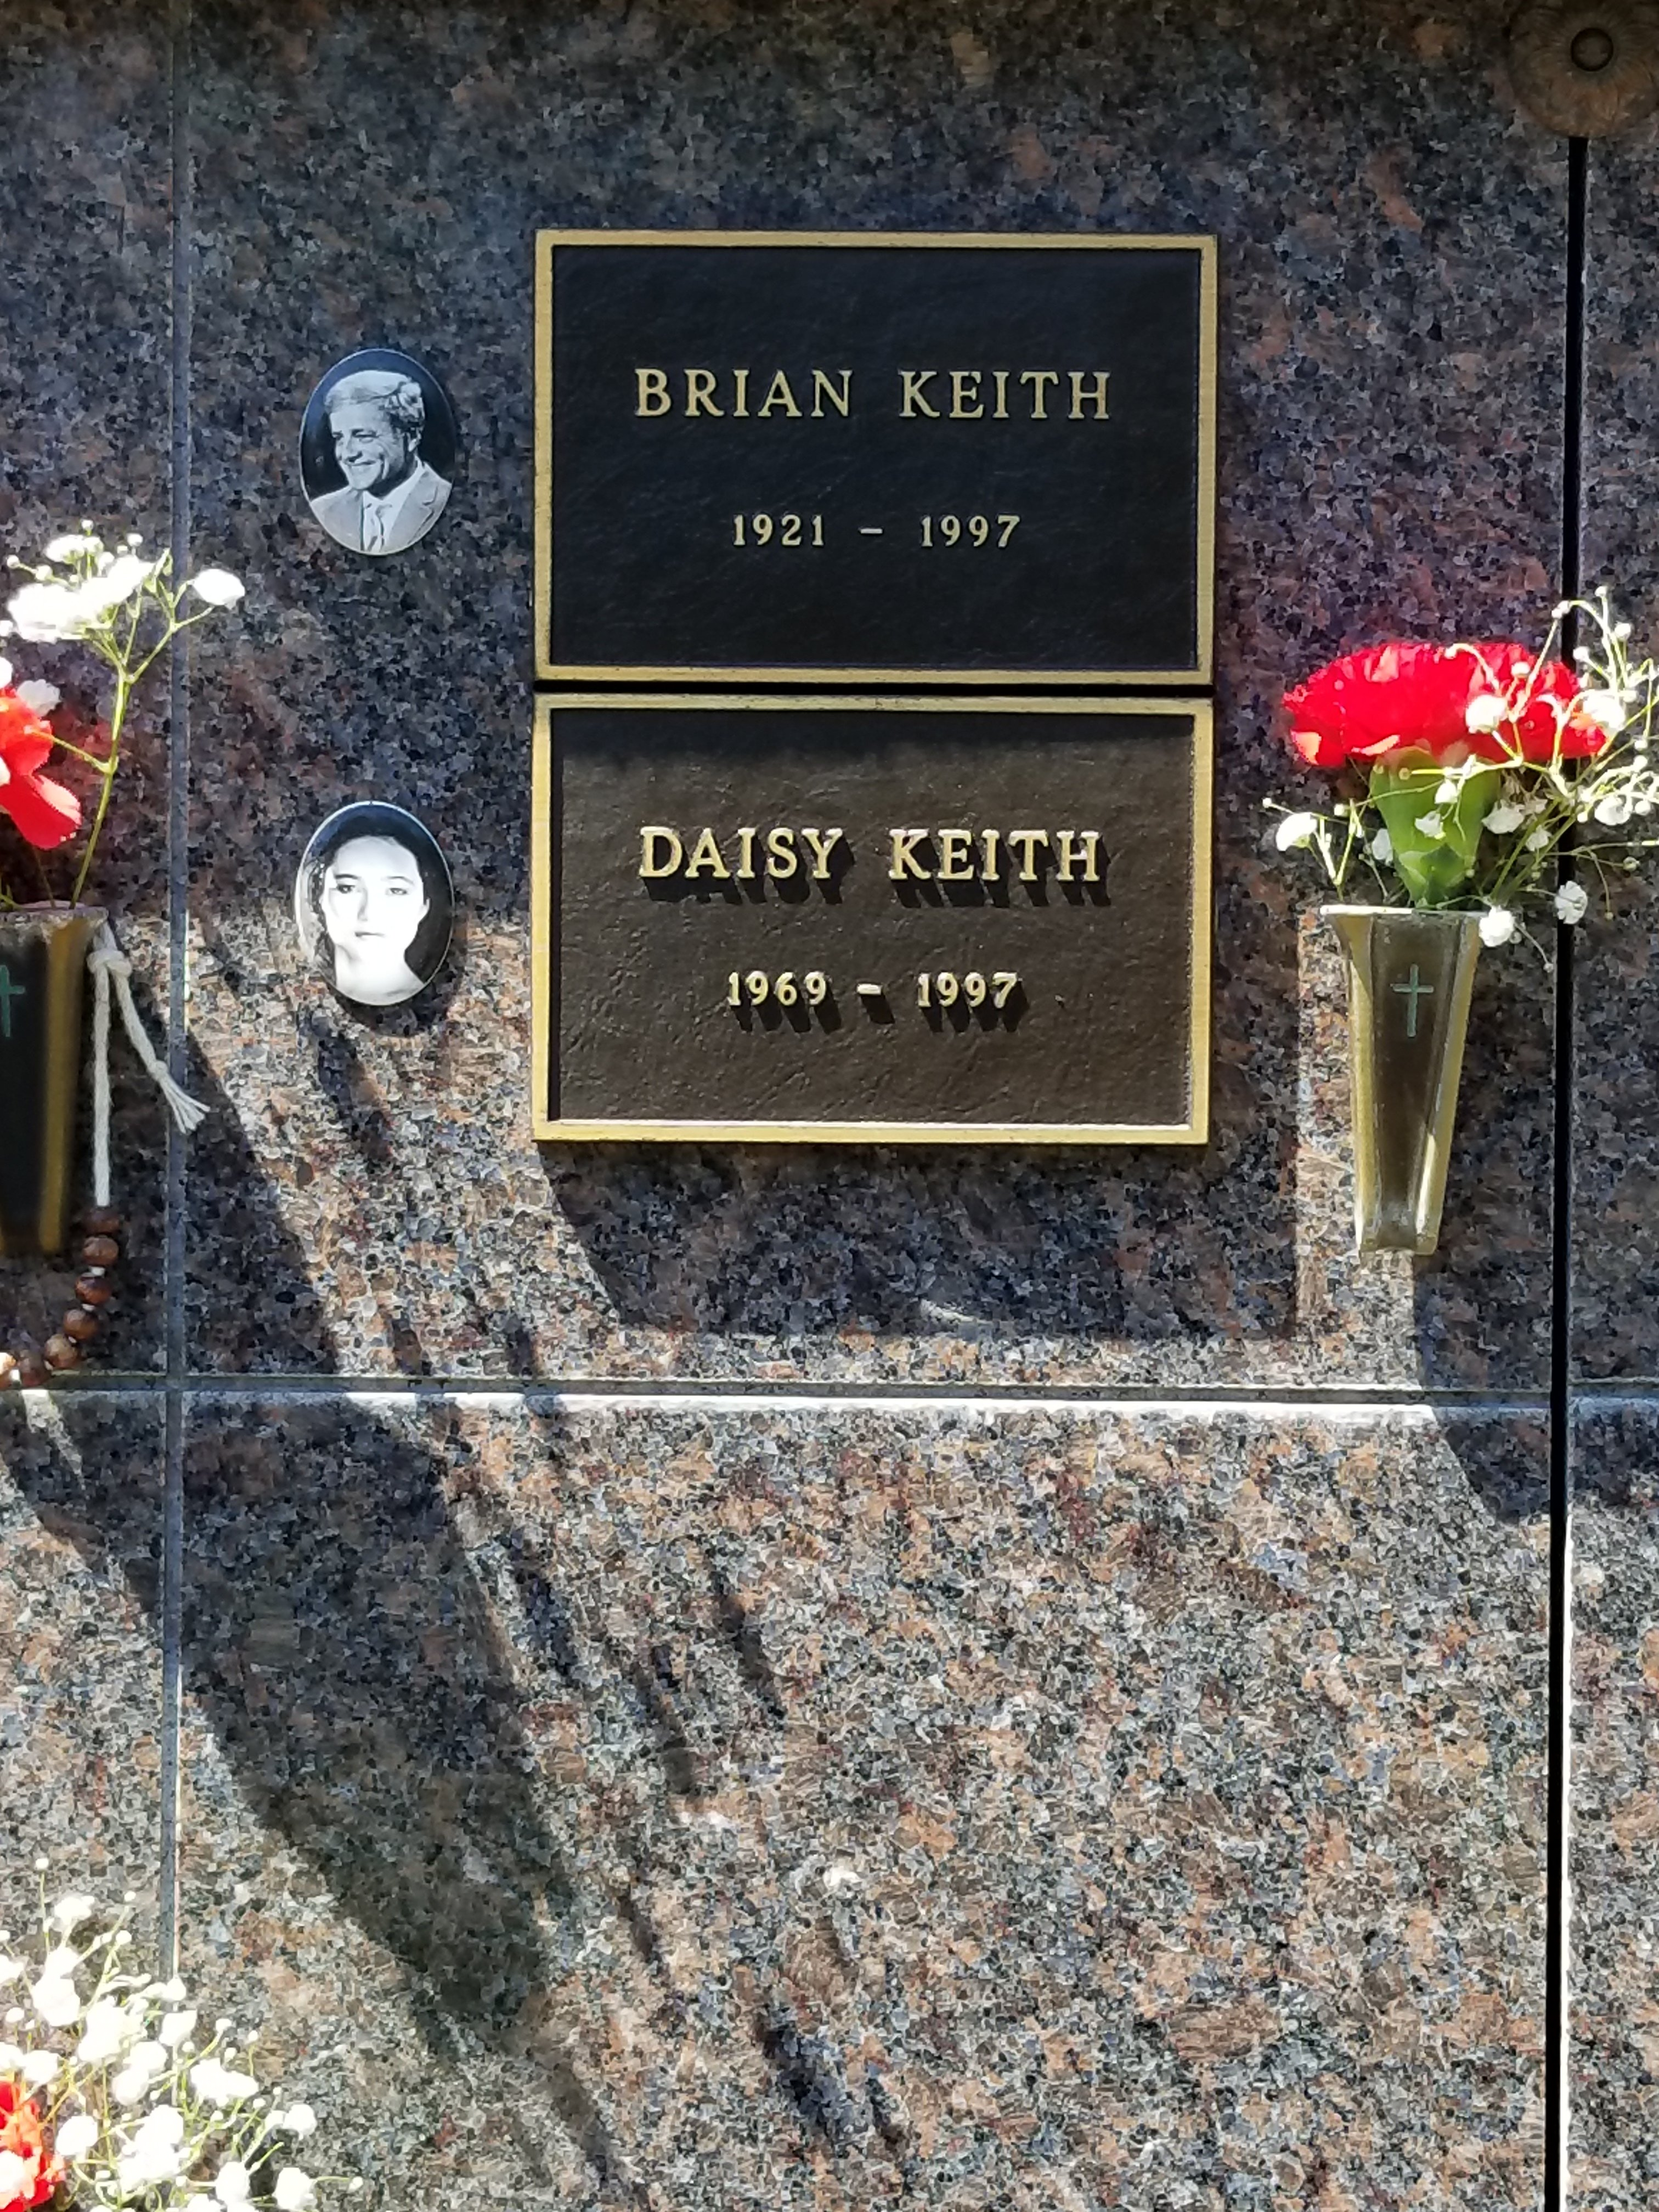 Brian Keith's Grave Marker. | Source: Wikimedia Commons